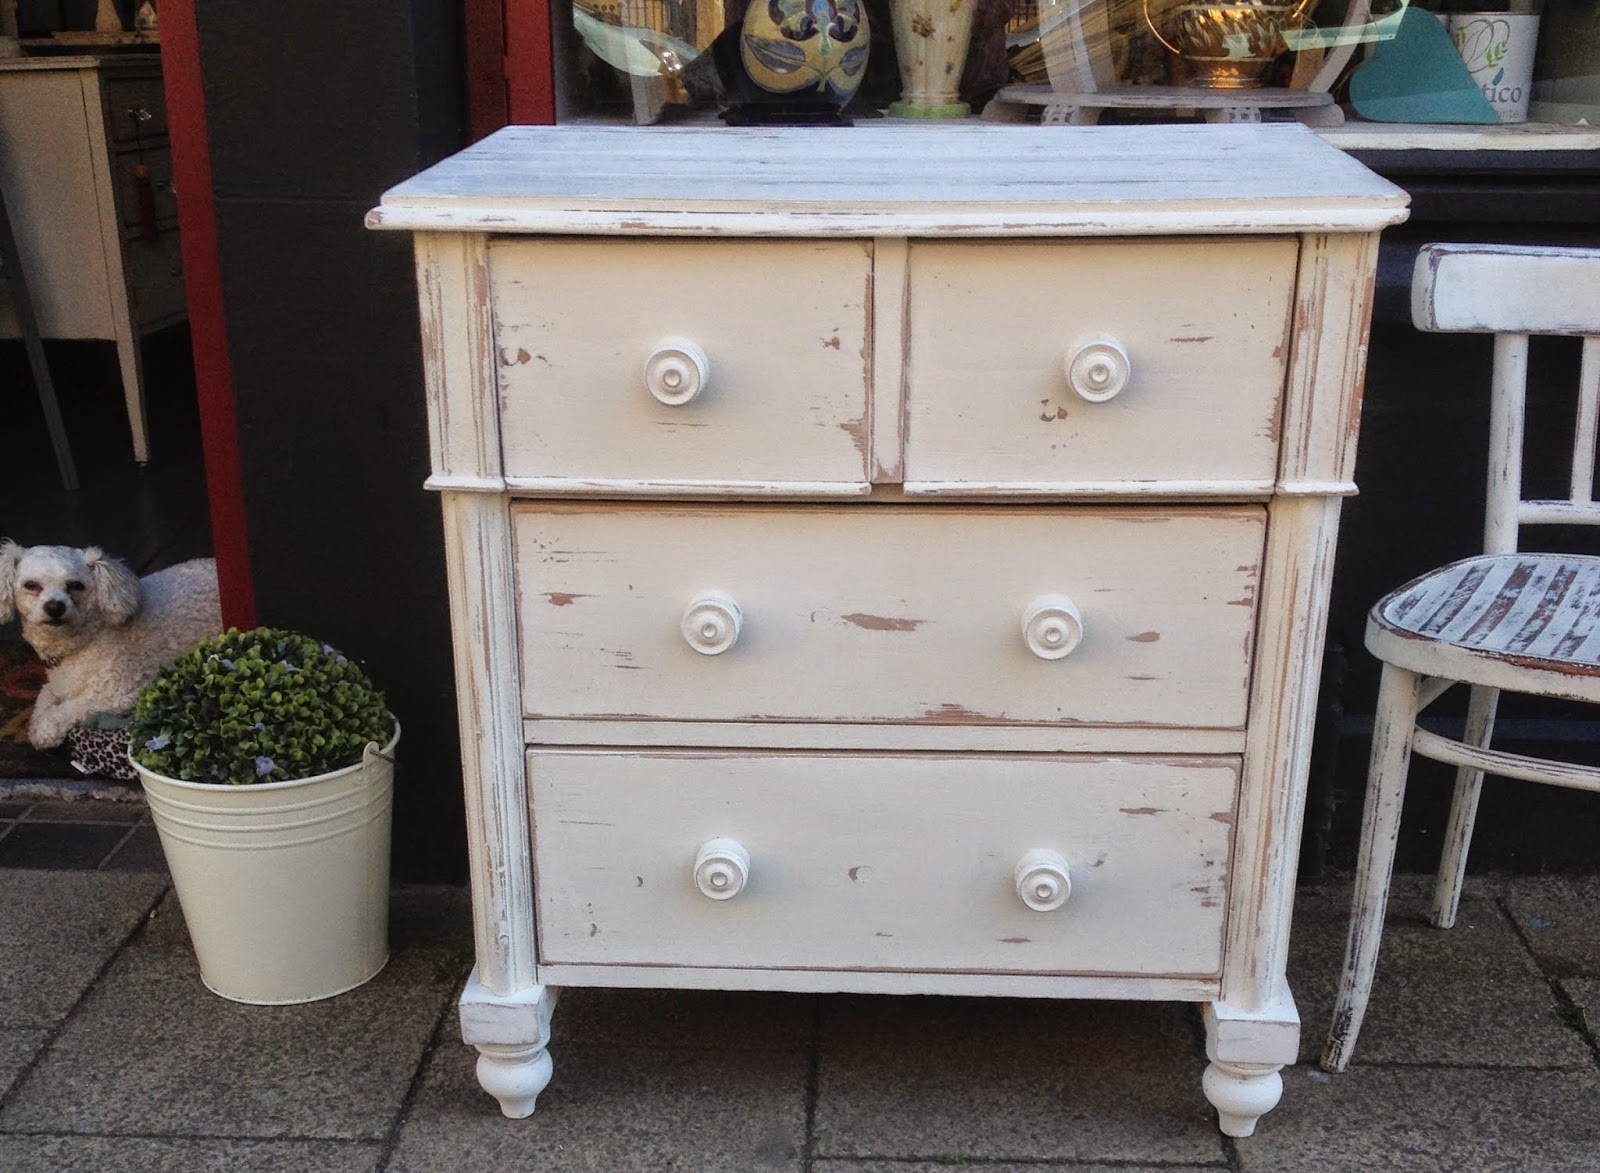 ChouChou Vintage: Pine Chest of Drawers Uber Chic Painted White